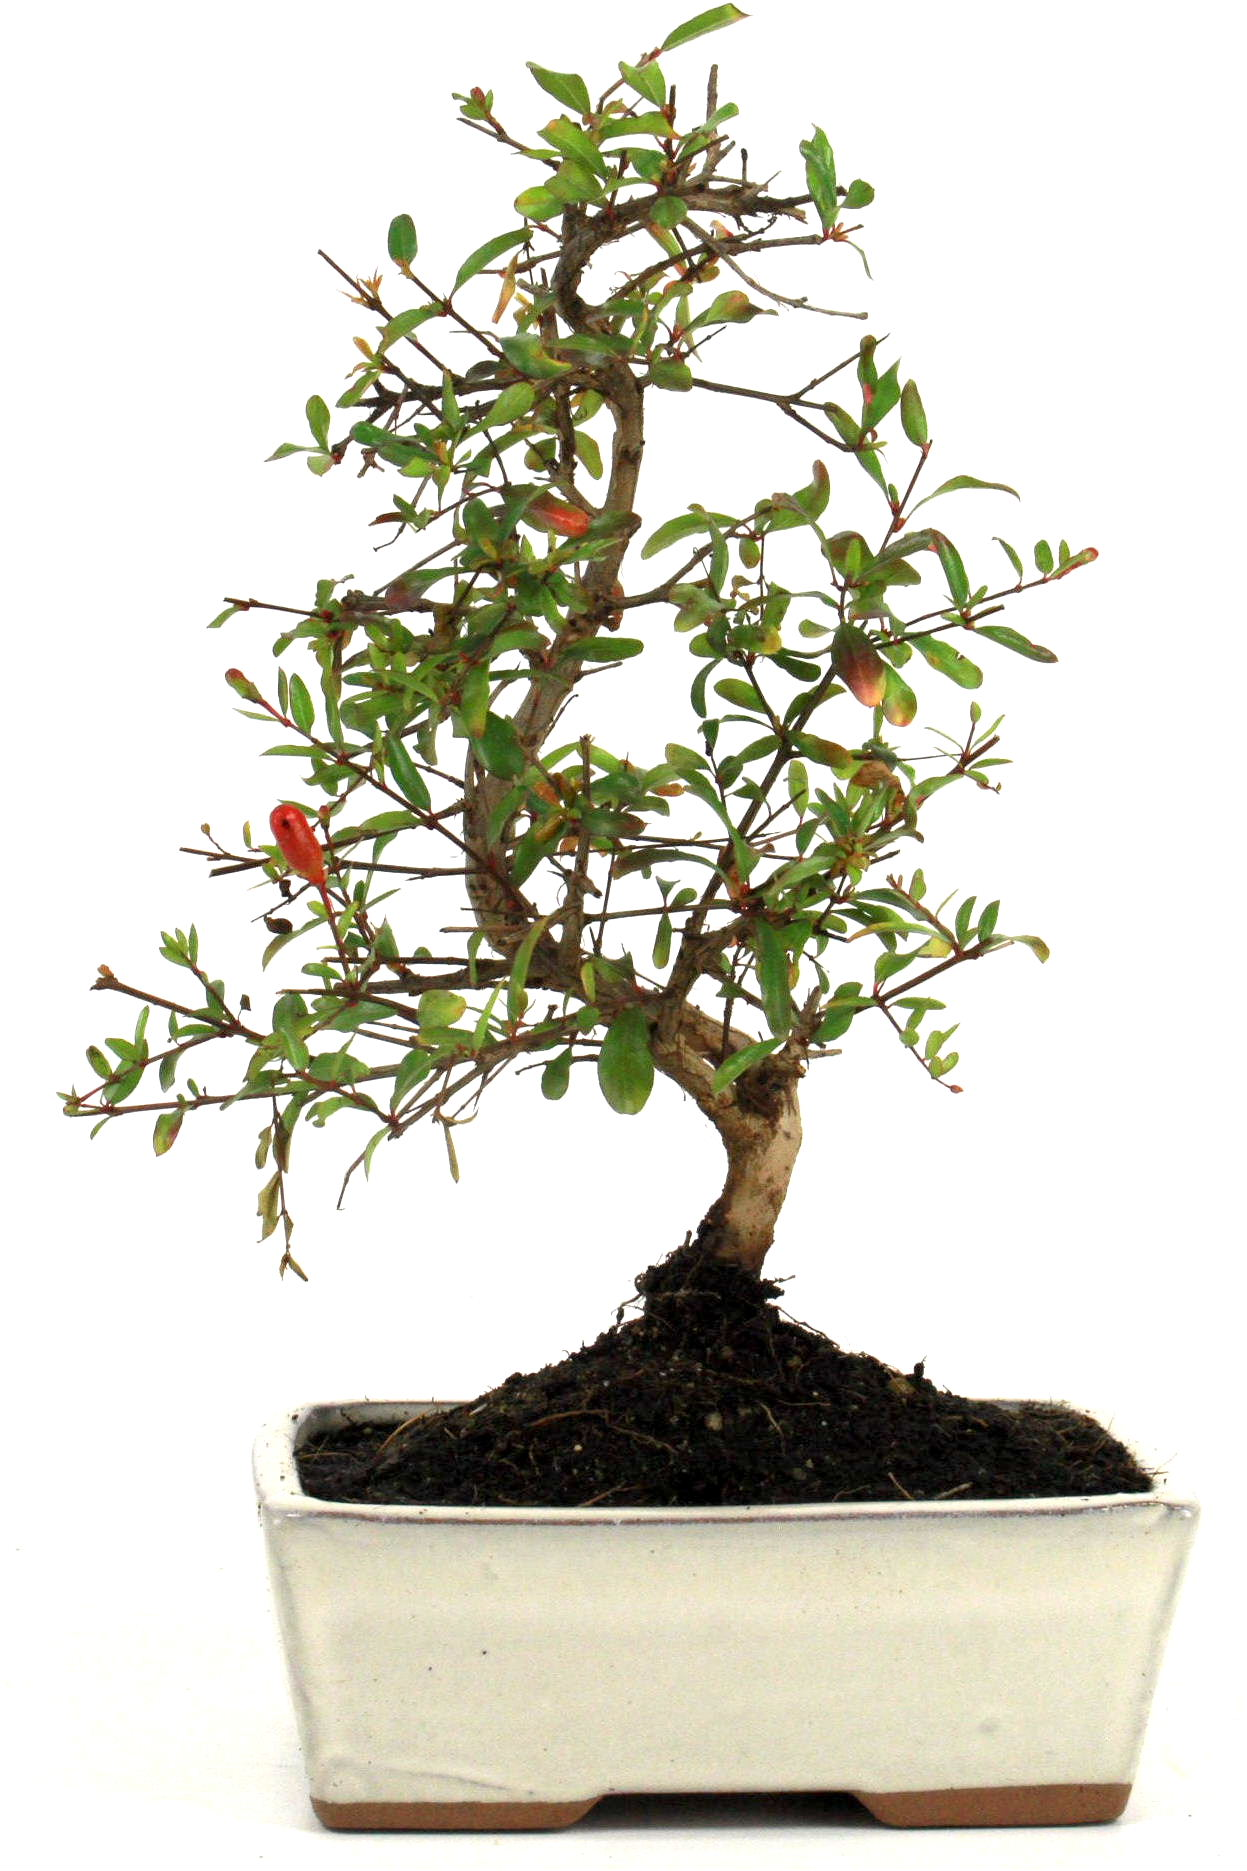 Granatapfel bonsai 25 30 cm 1624 bei oyaki bonsai kaufen for Bonsai onlineshop